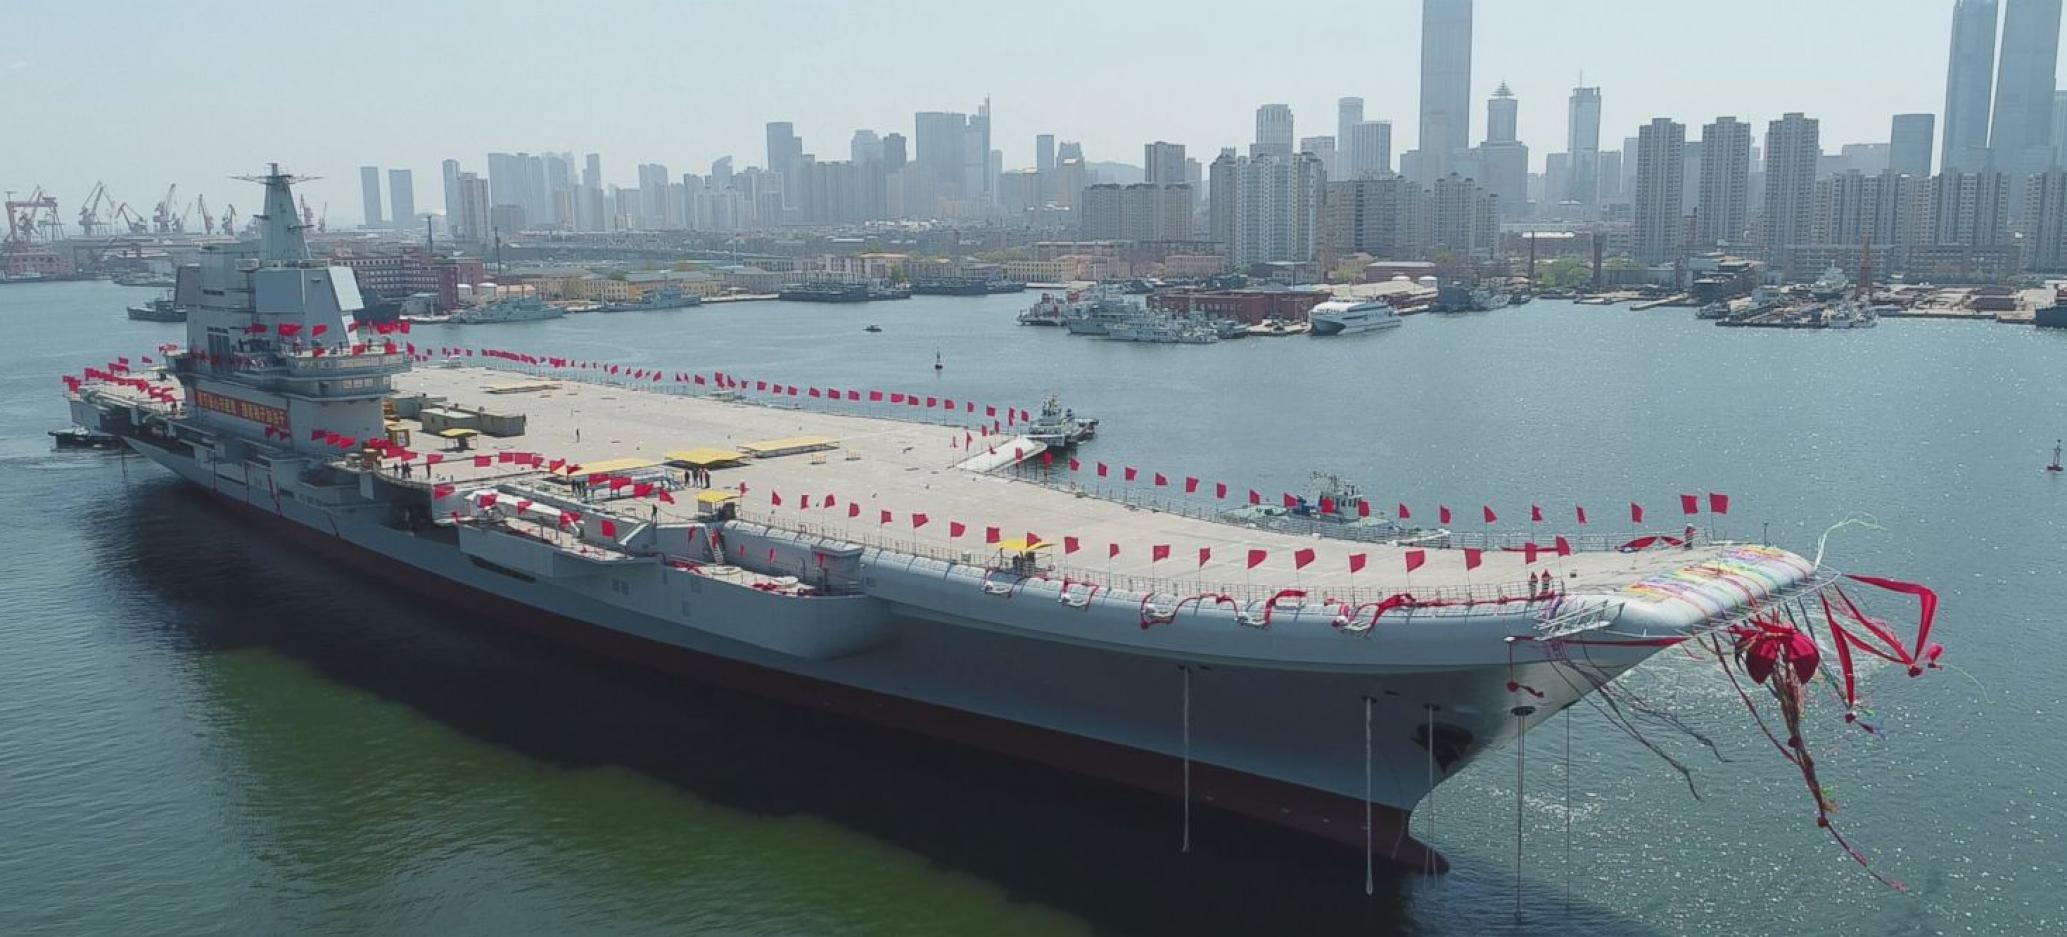 China's First Domestically Built Aircraft Carrier